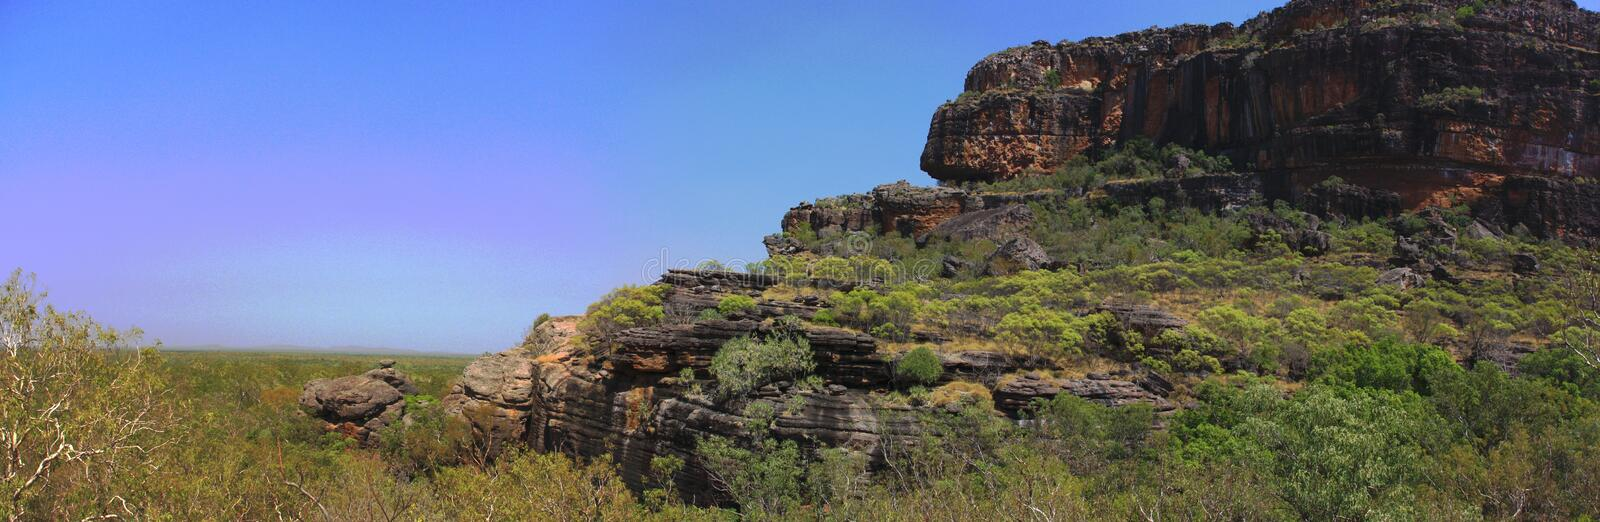 Nourlangie, parc national de kakadu, Australie photos stock